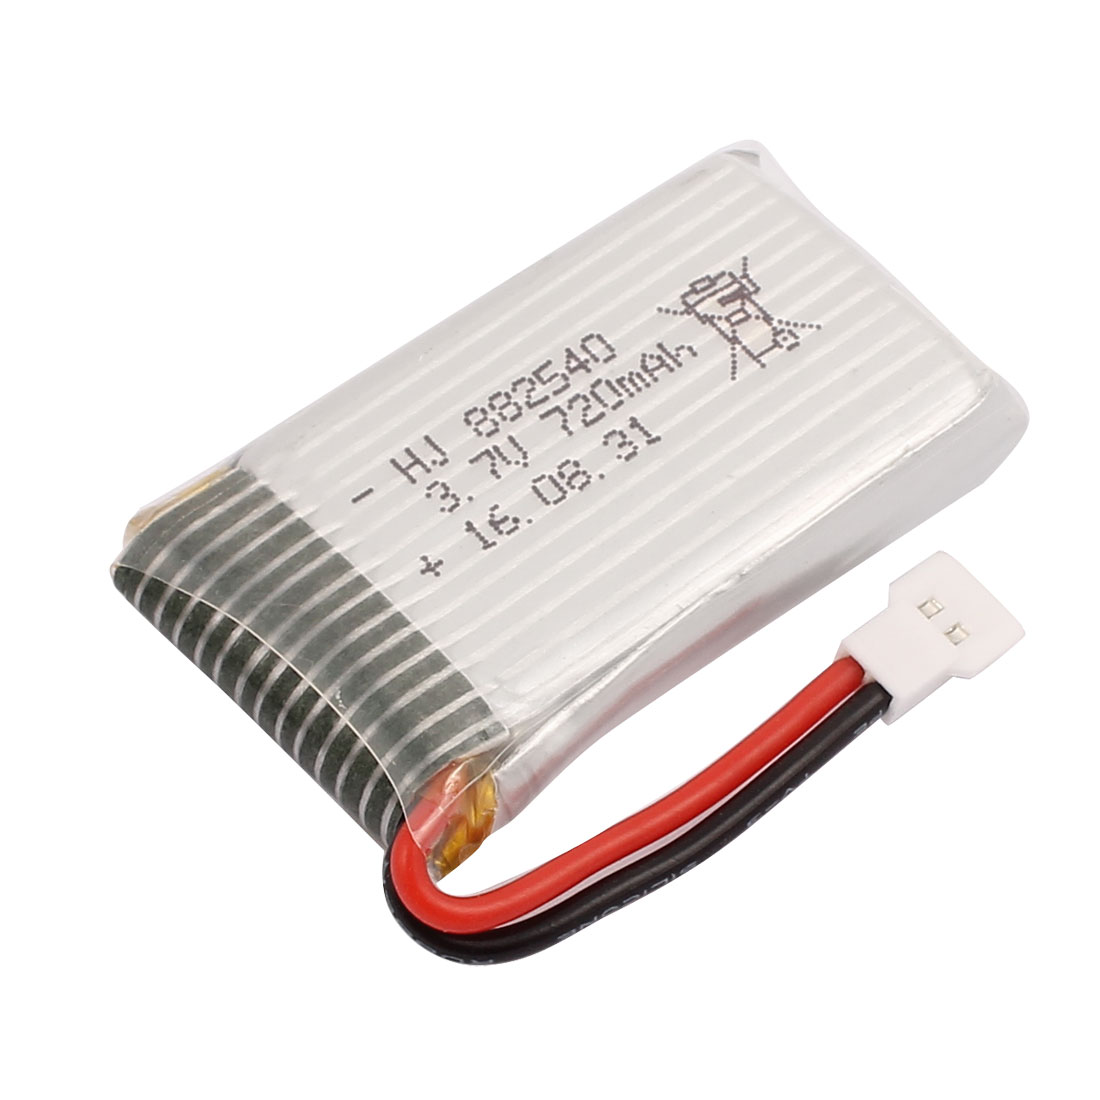 3.7V 720mAh Charging Lithium Polymer Li-po Battery MX2.0-2P Connector for RC Airplane Aircraft